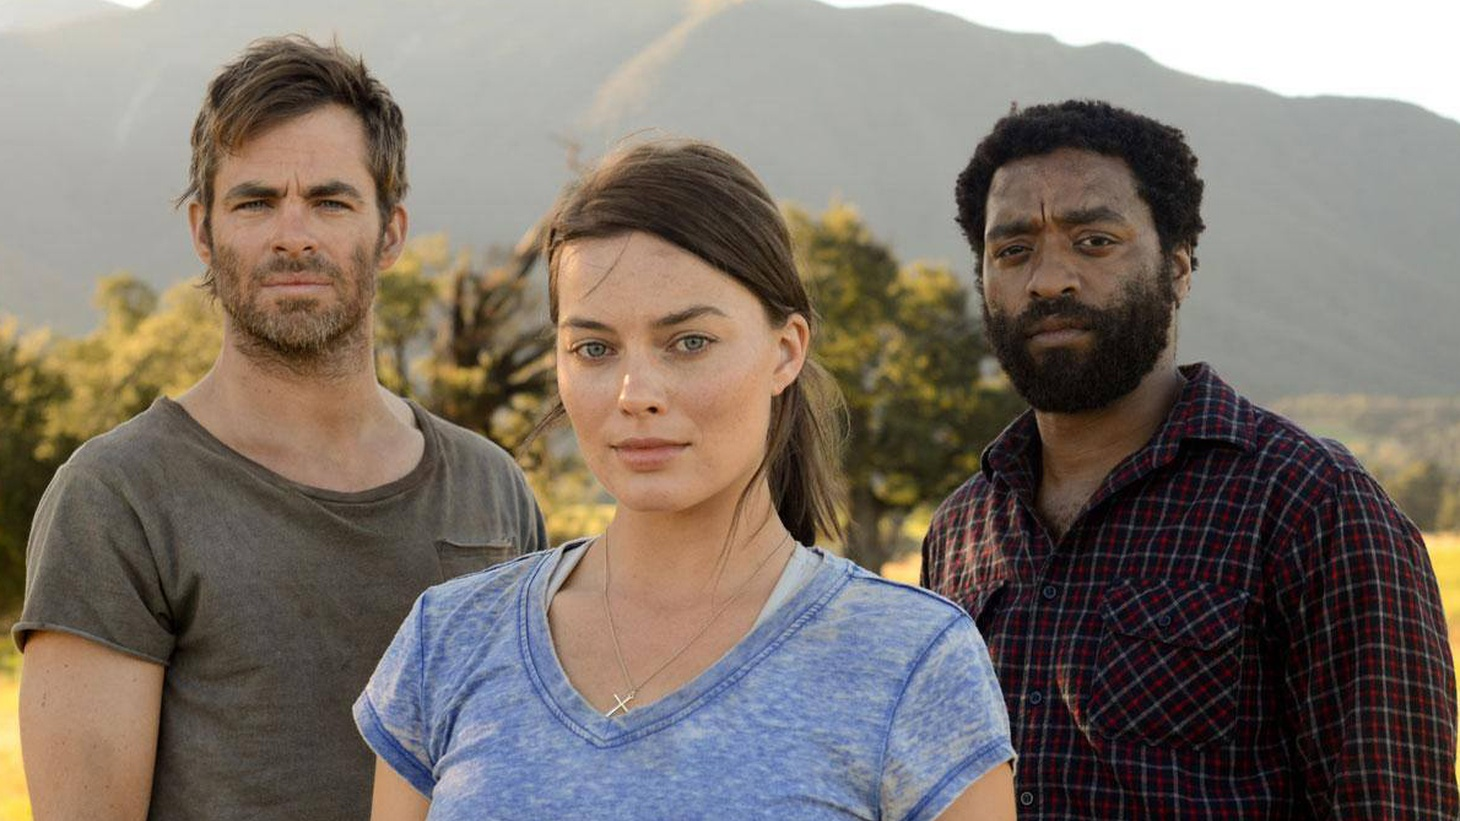 In Z for Zachariah the post-apocalyptic thriller gets a renovation, if not re-invention -- as a love triangle in a valley that has somehow been spared from whatever it was that brought an end to civilization.